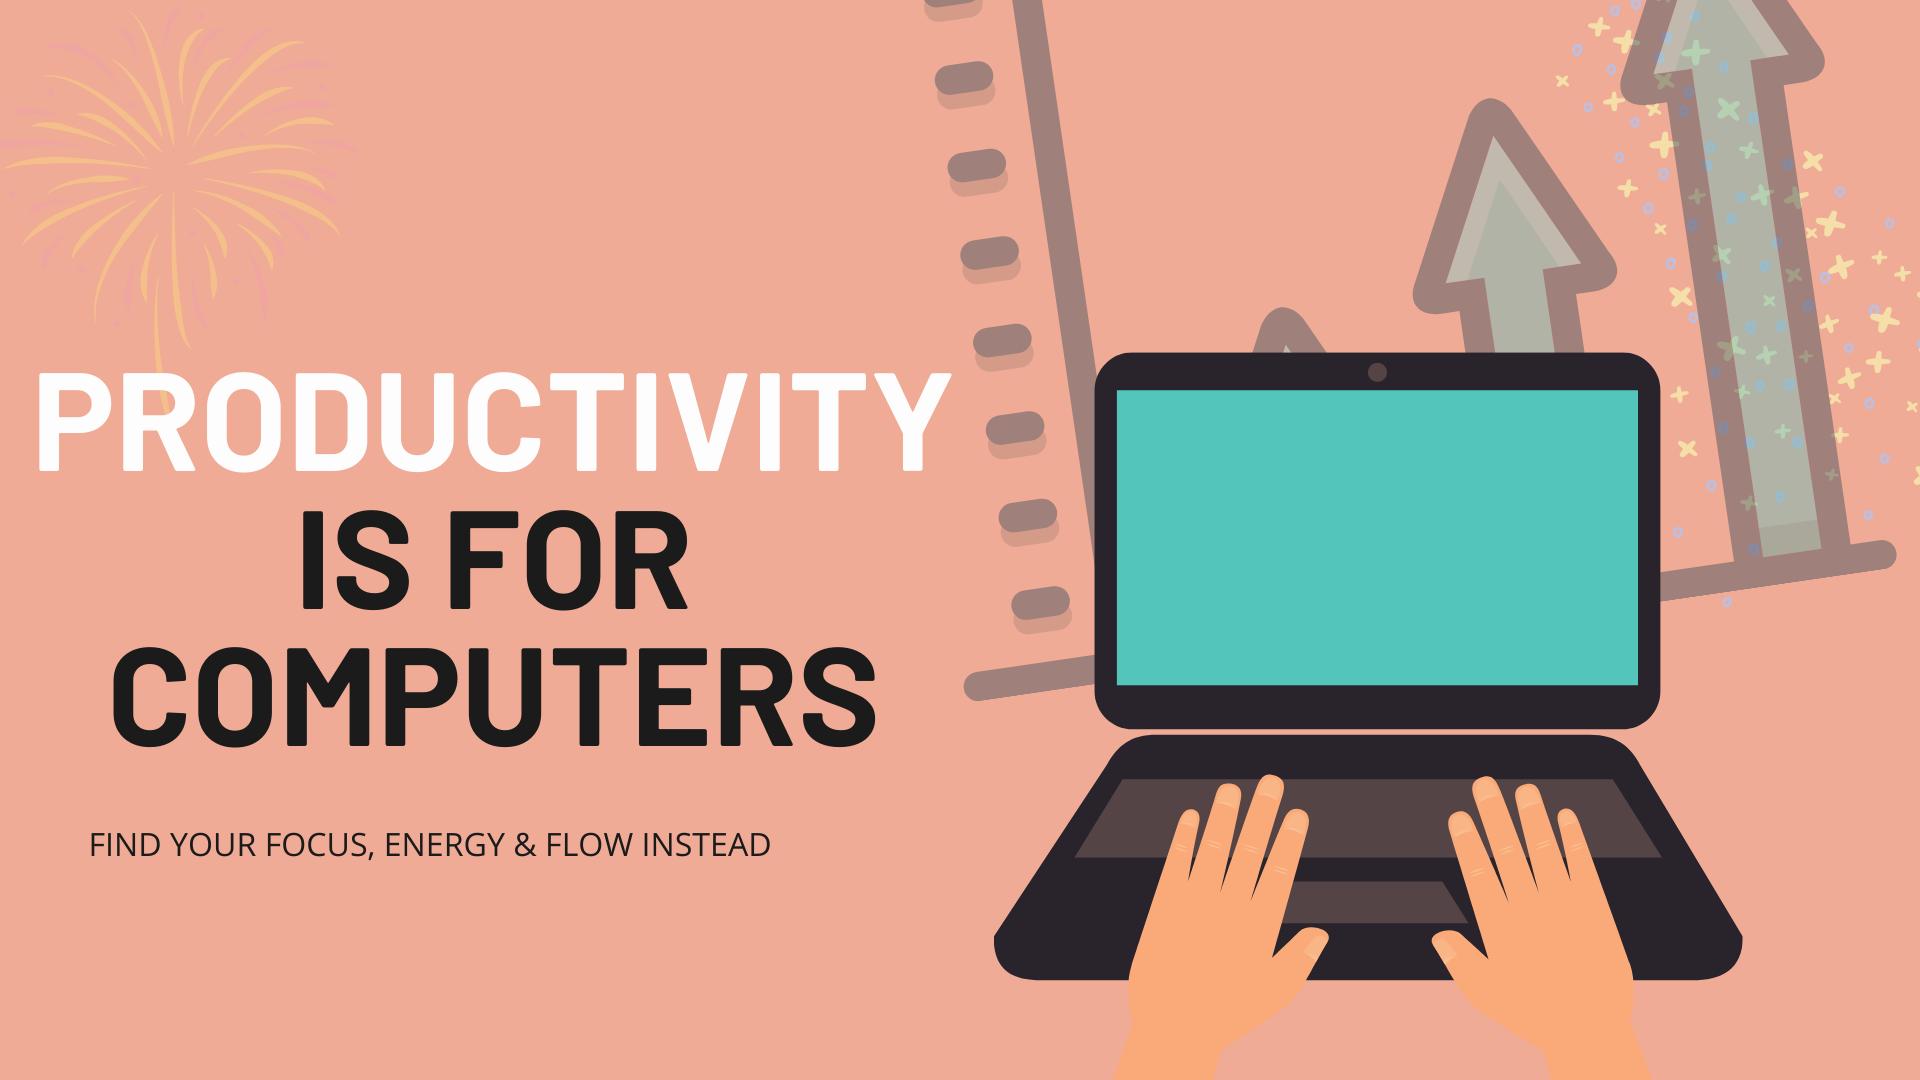 Productivity Is For Computers: Find Focus, Energy & Flow Instead